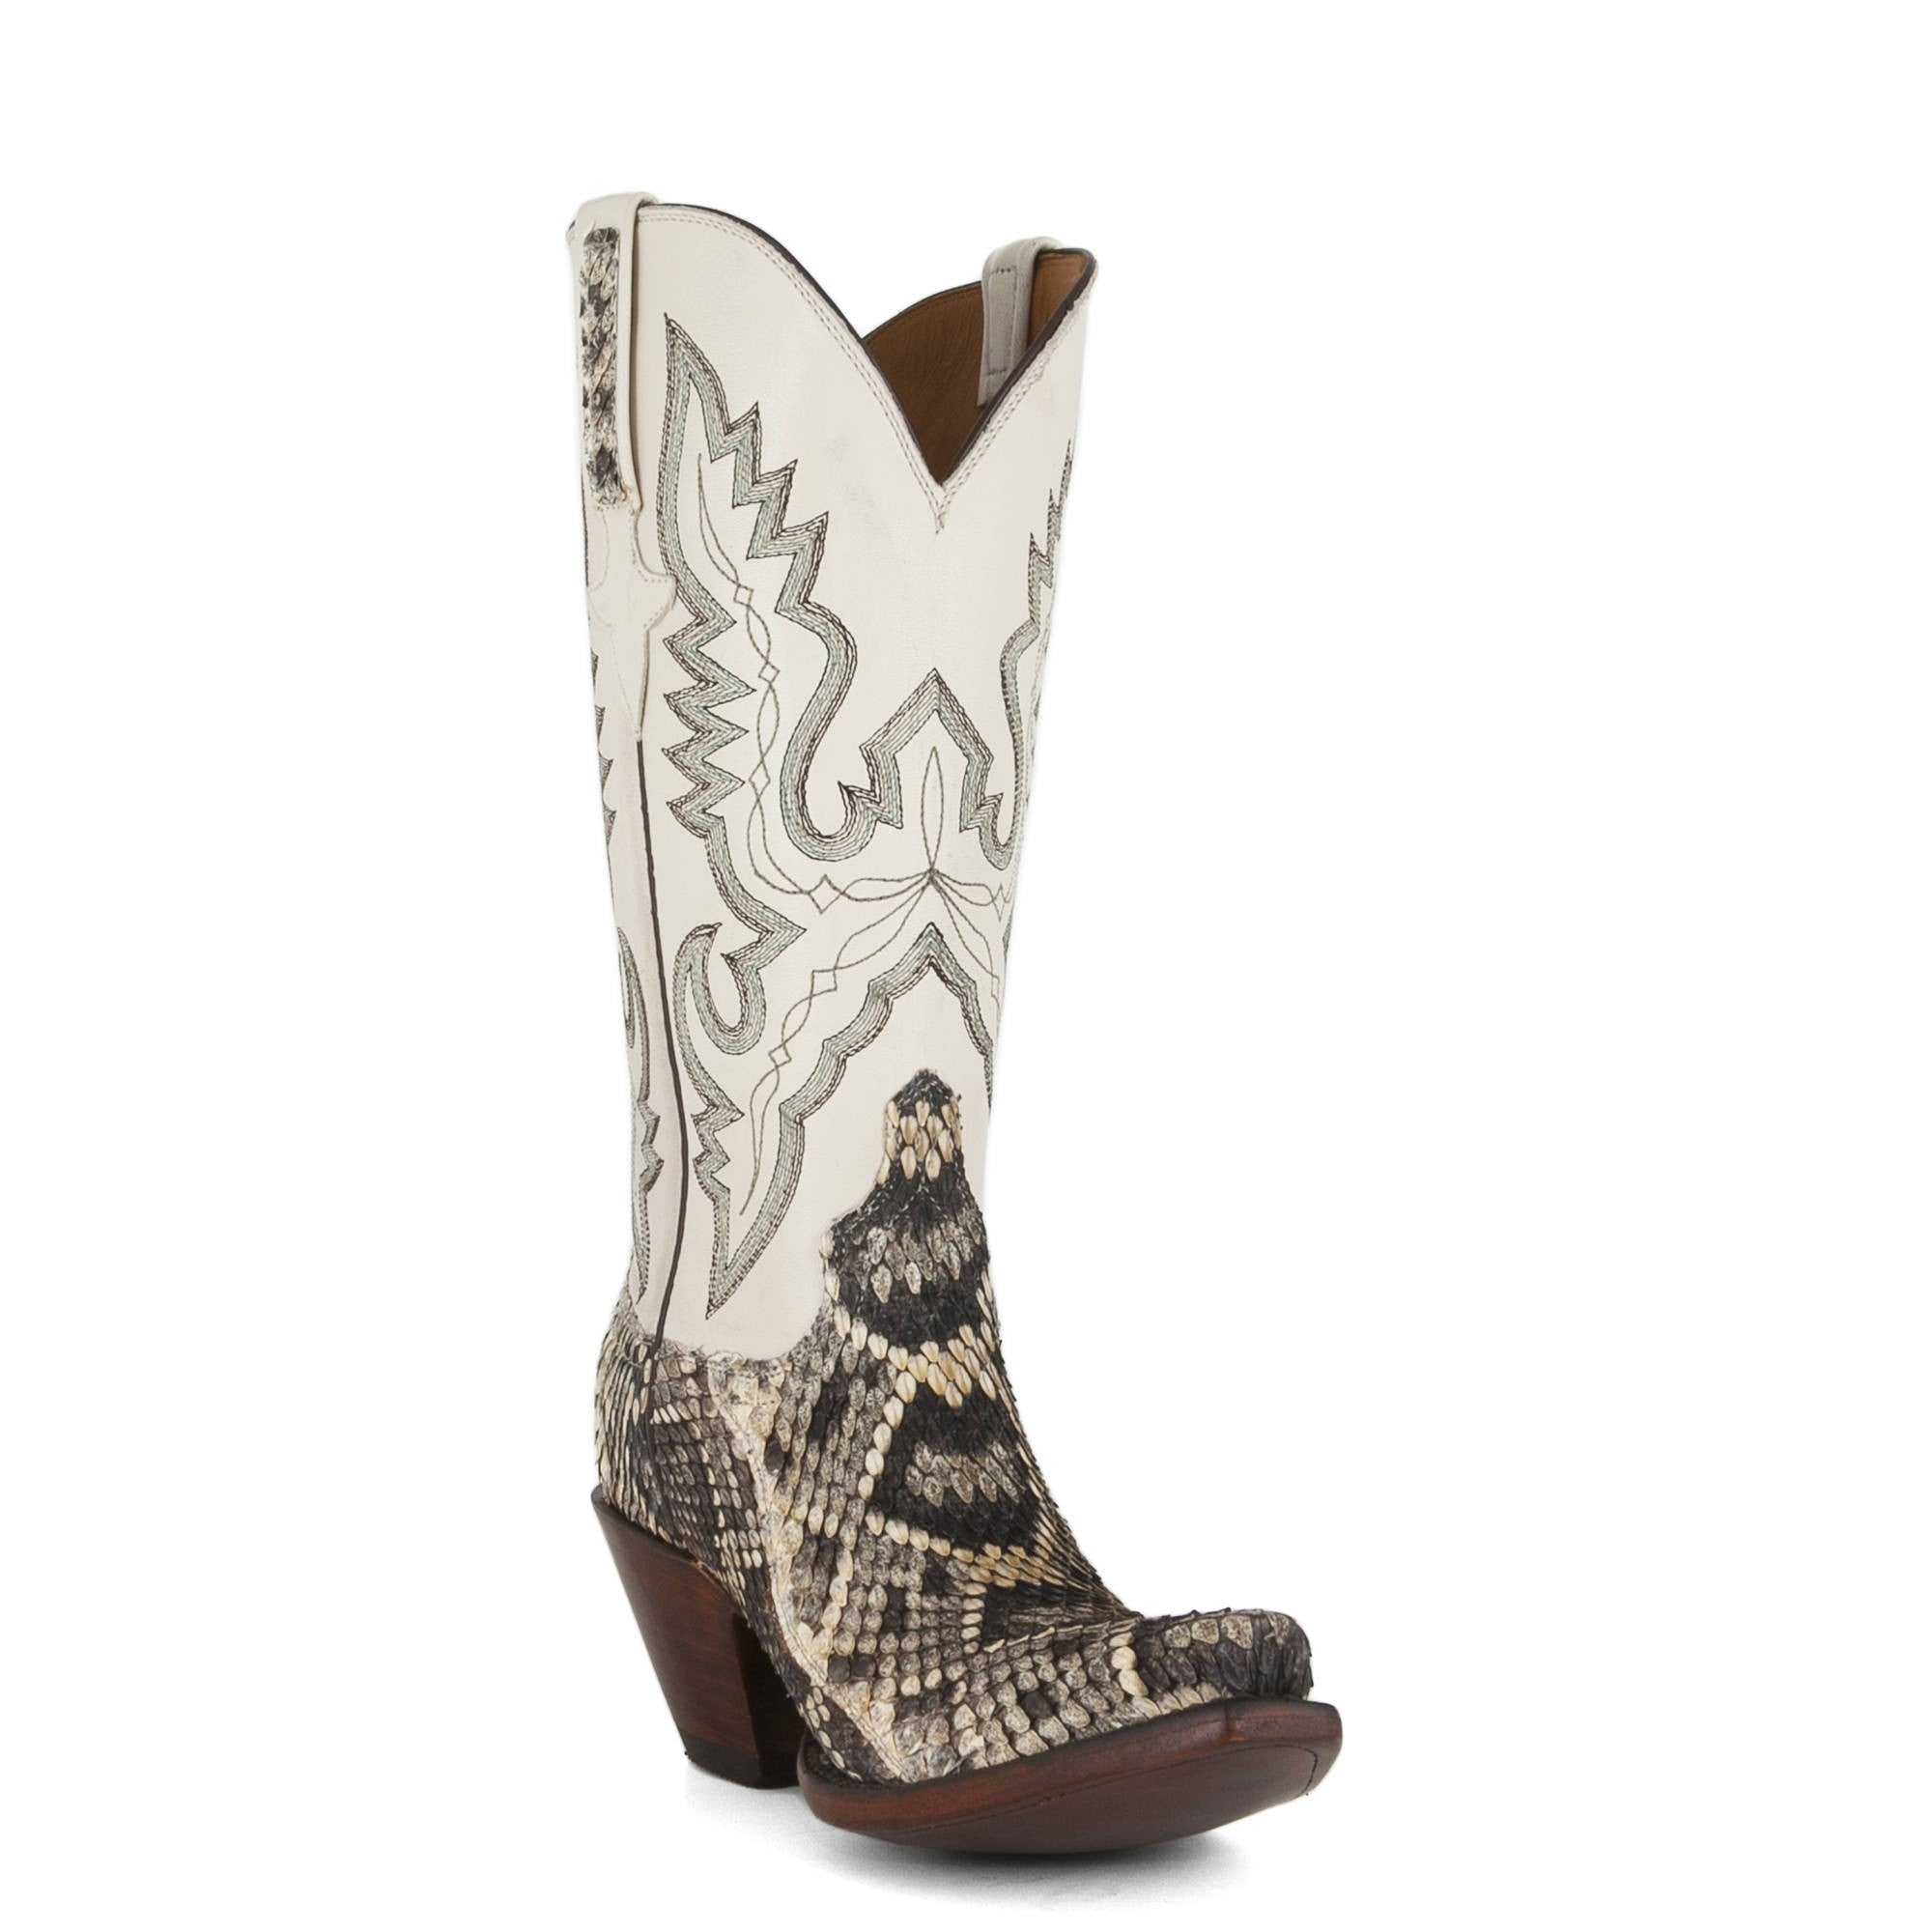 2df047bfaaa Women's Lucchese Classics Boots Eastern Rattlesnake #GD9193-5/2F ...